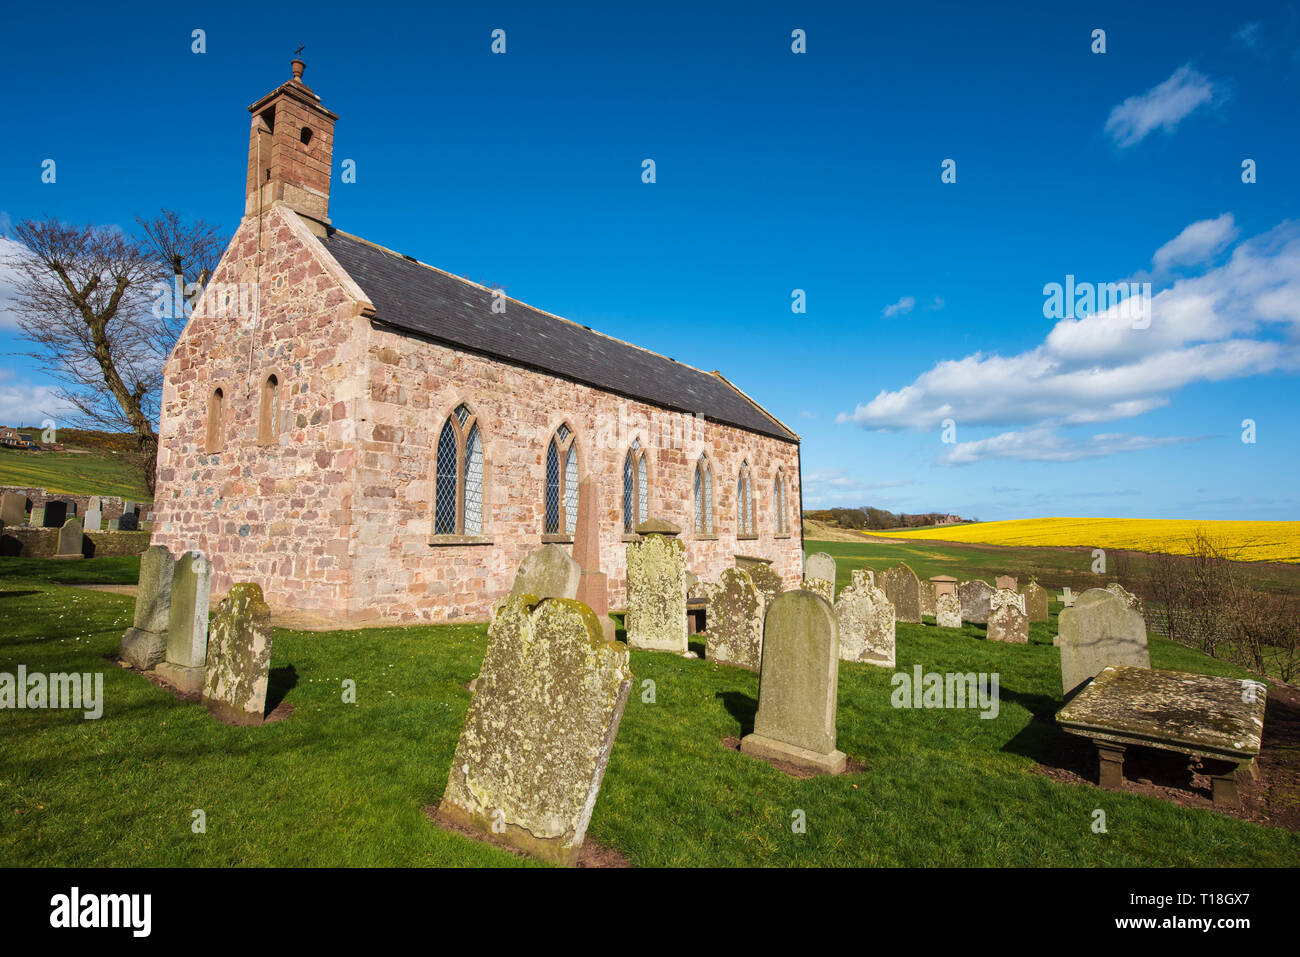 Kinneff Old Church is where the Scottish Crown Jewels were hidden after they were rescued from Dunnottar Castle during Cromwell's siege in 1652. - Stock Image